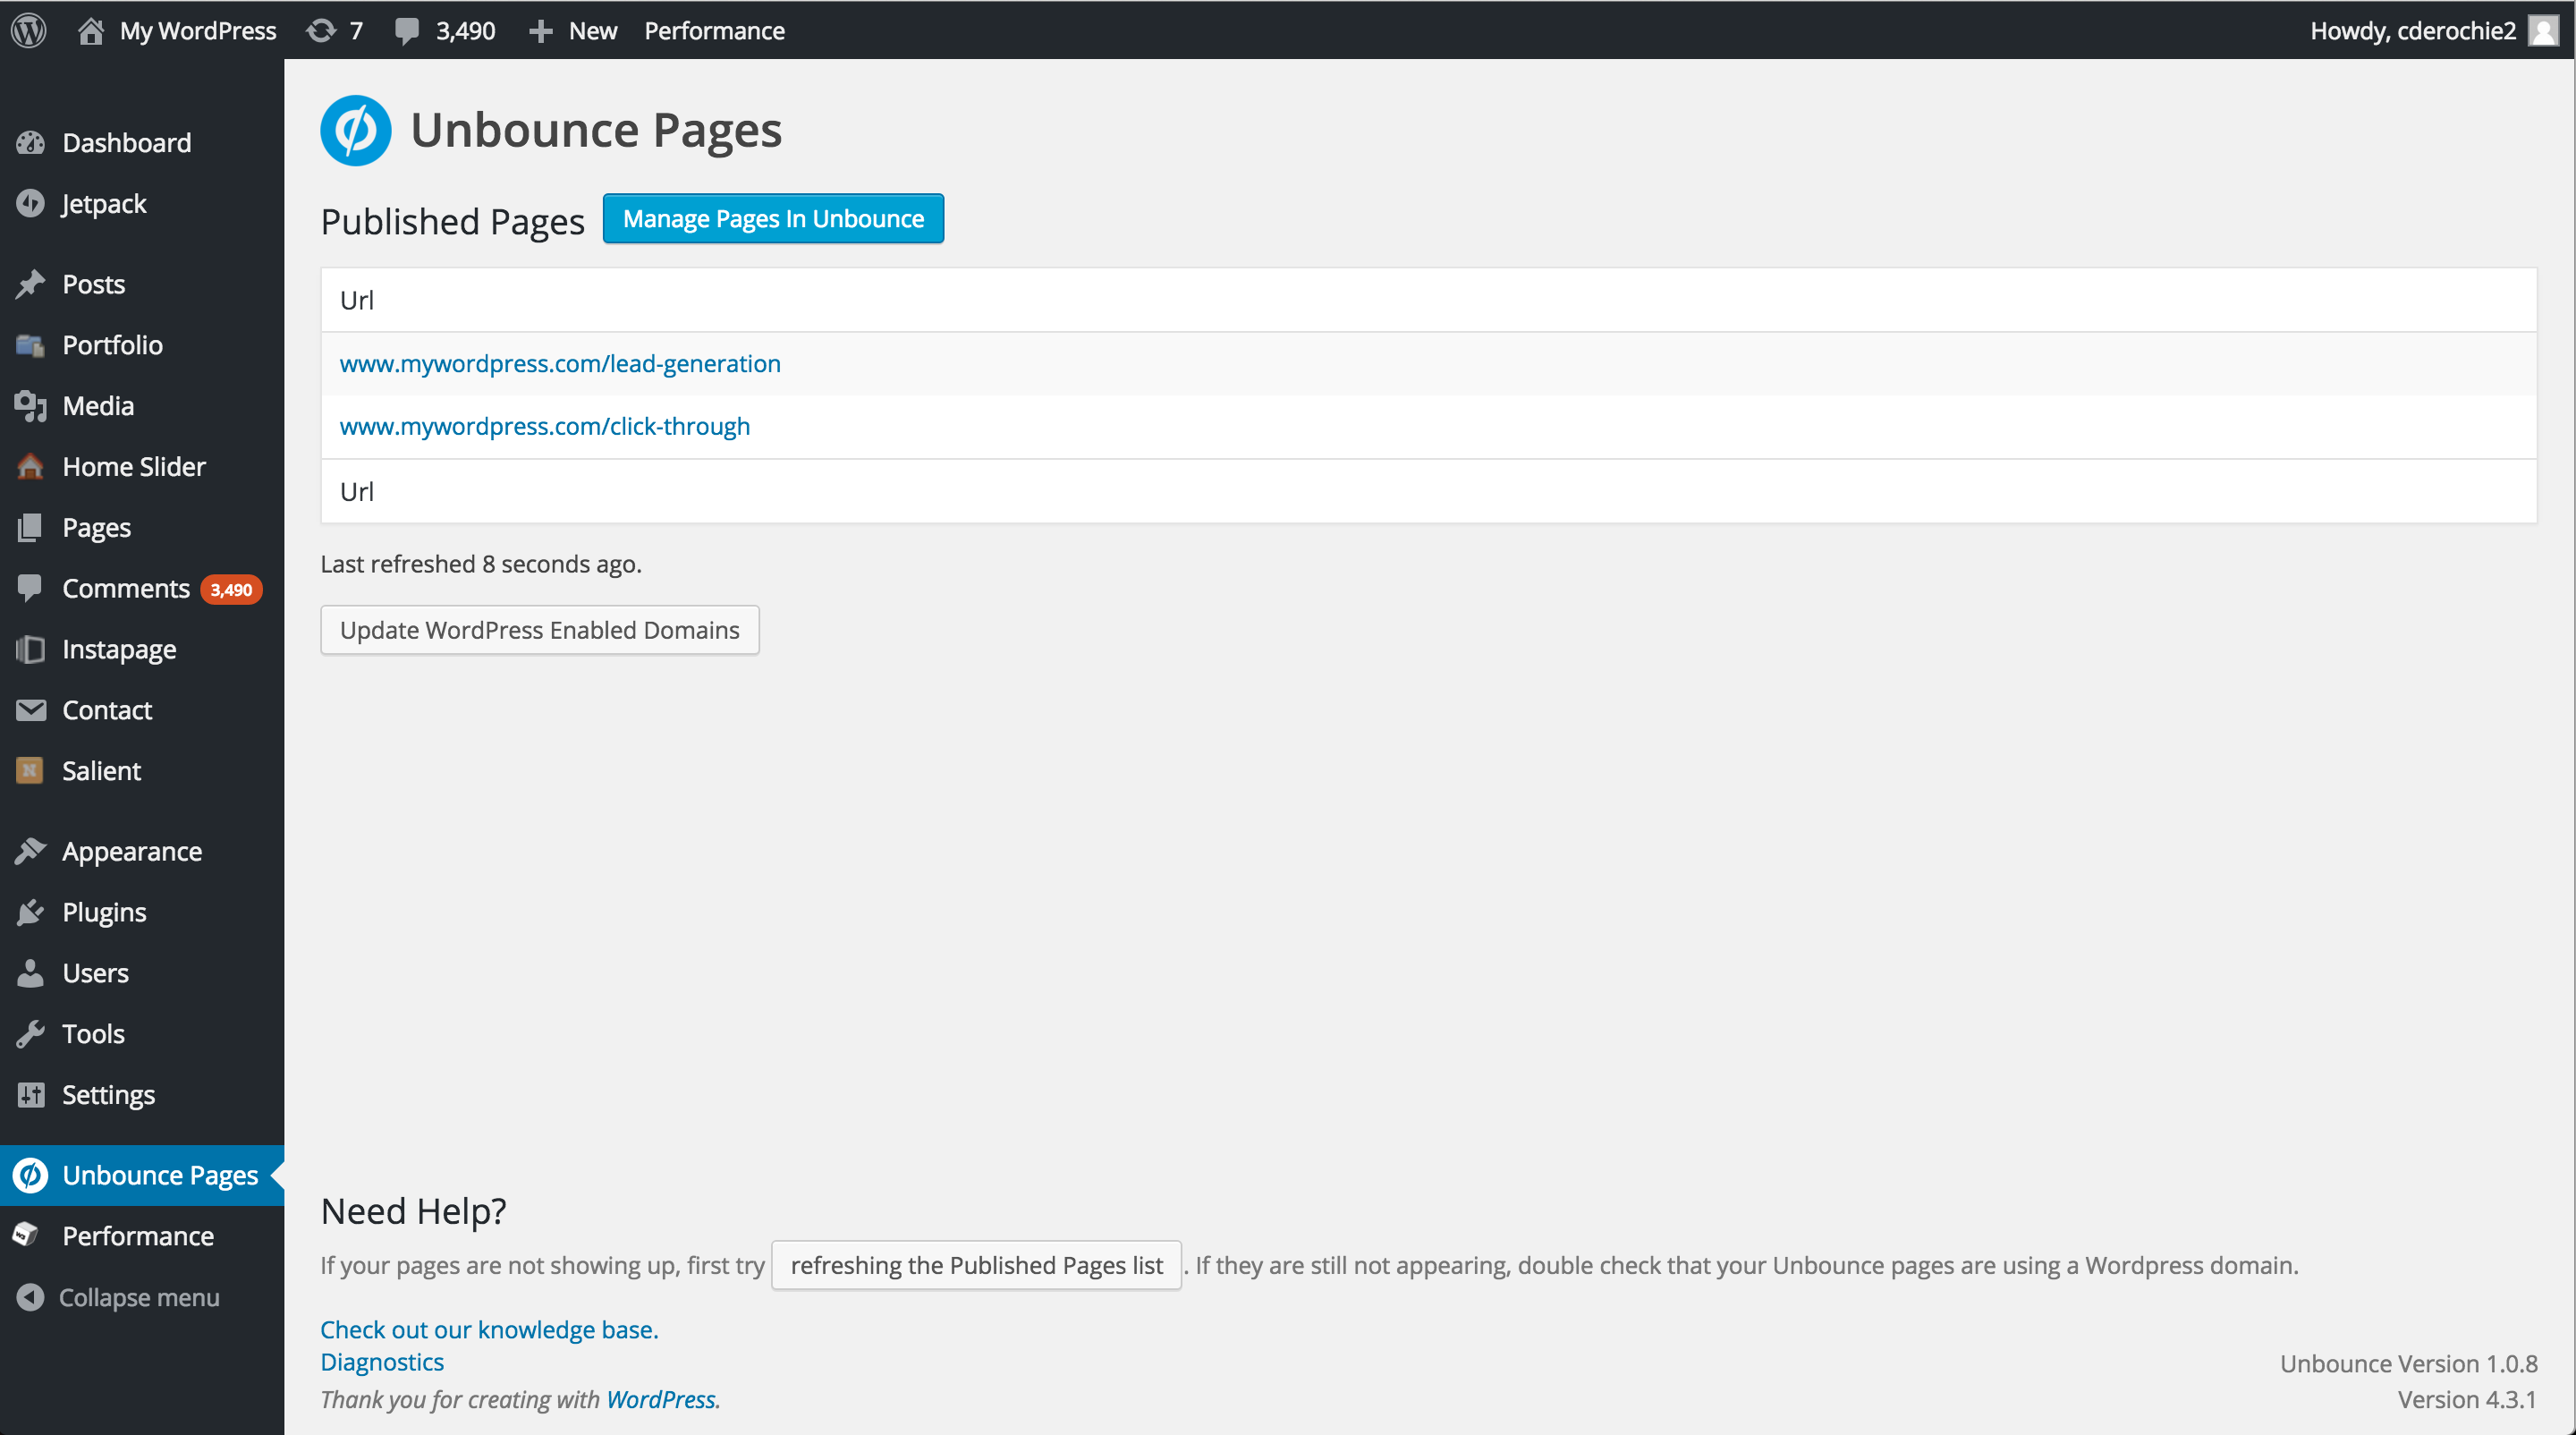 View all of your WordPress landing pages in the plugin's interface and easily manage them in Unbounce.